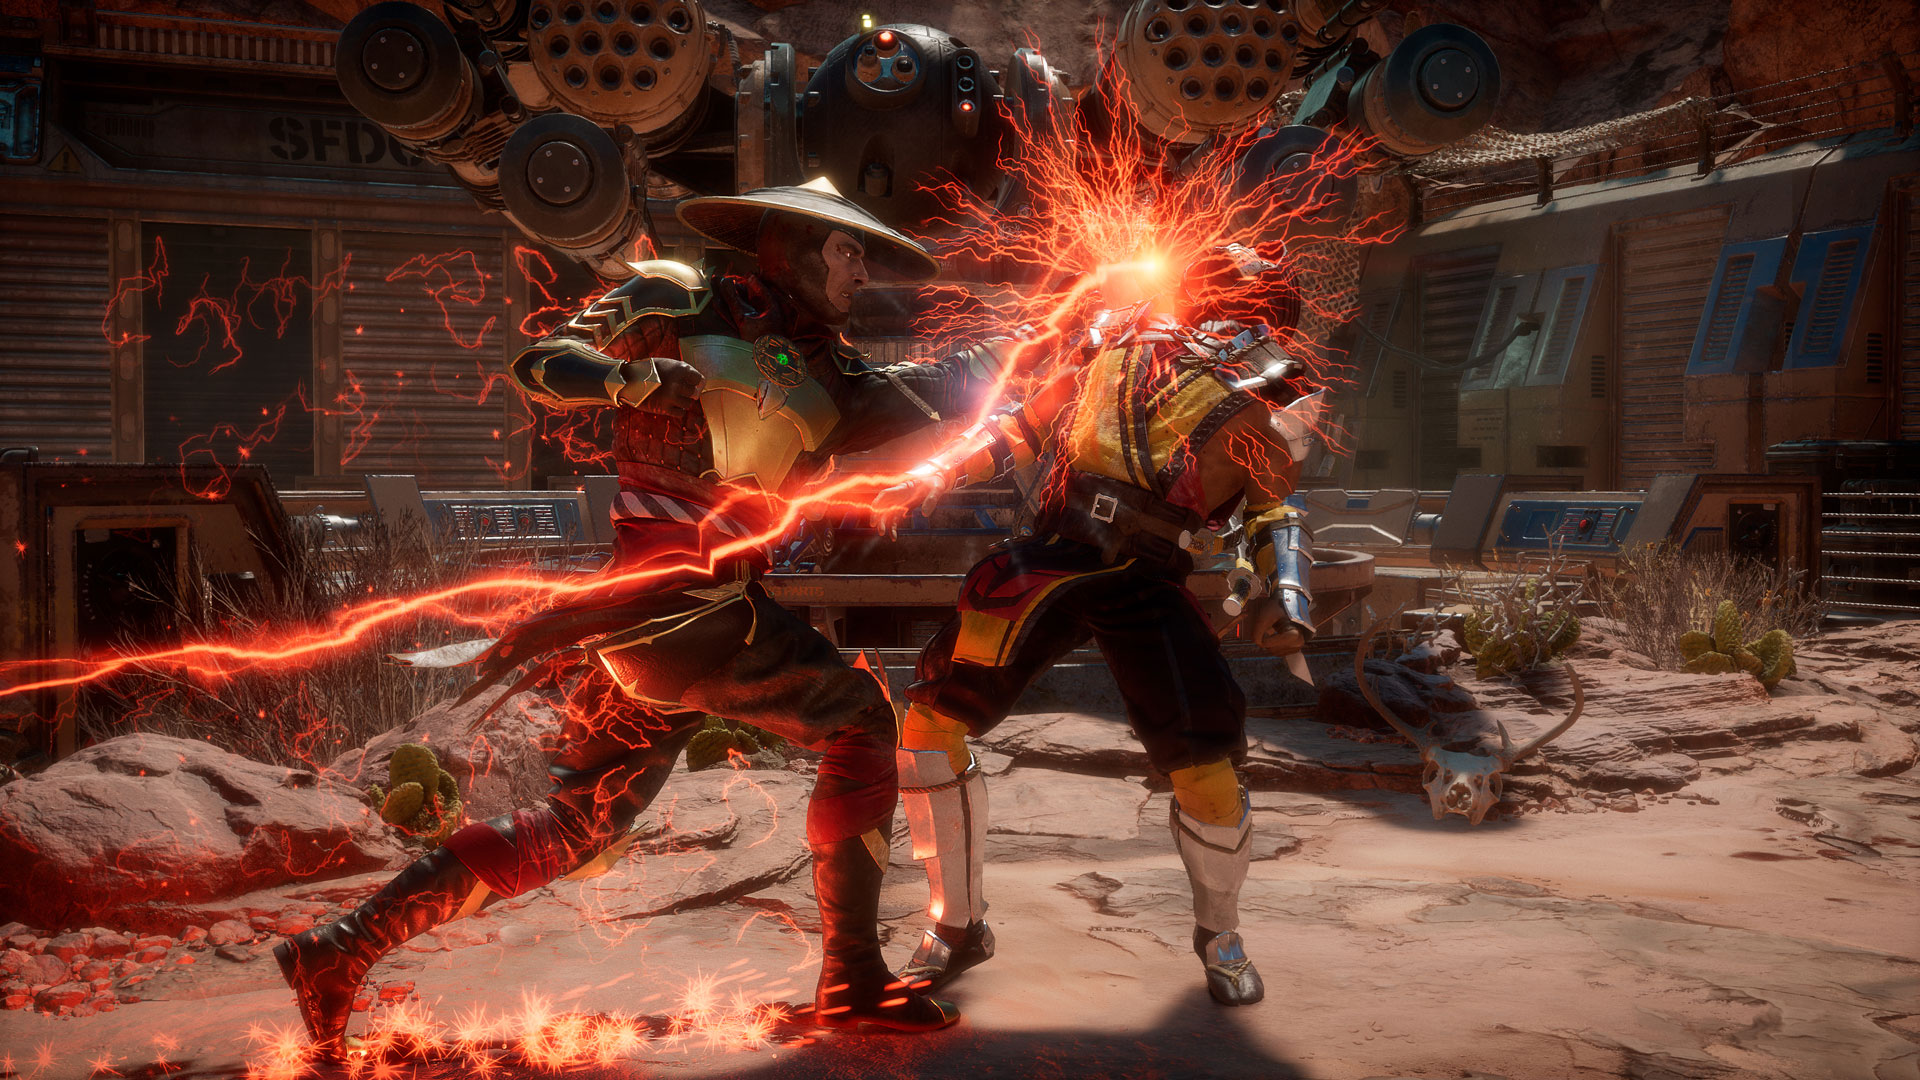 Mortal Kombat 11's 30 fps cap has been lifted for cinematics and the Krypt